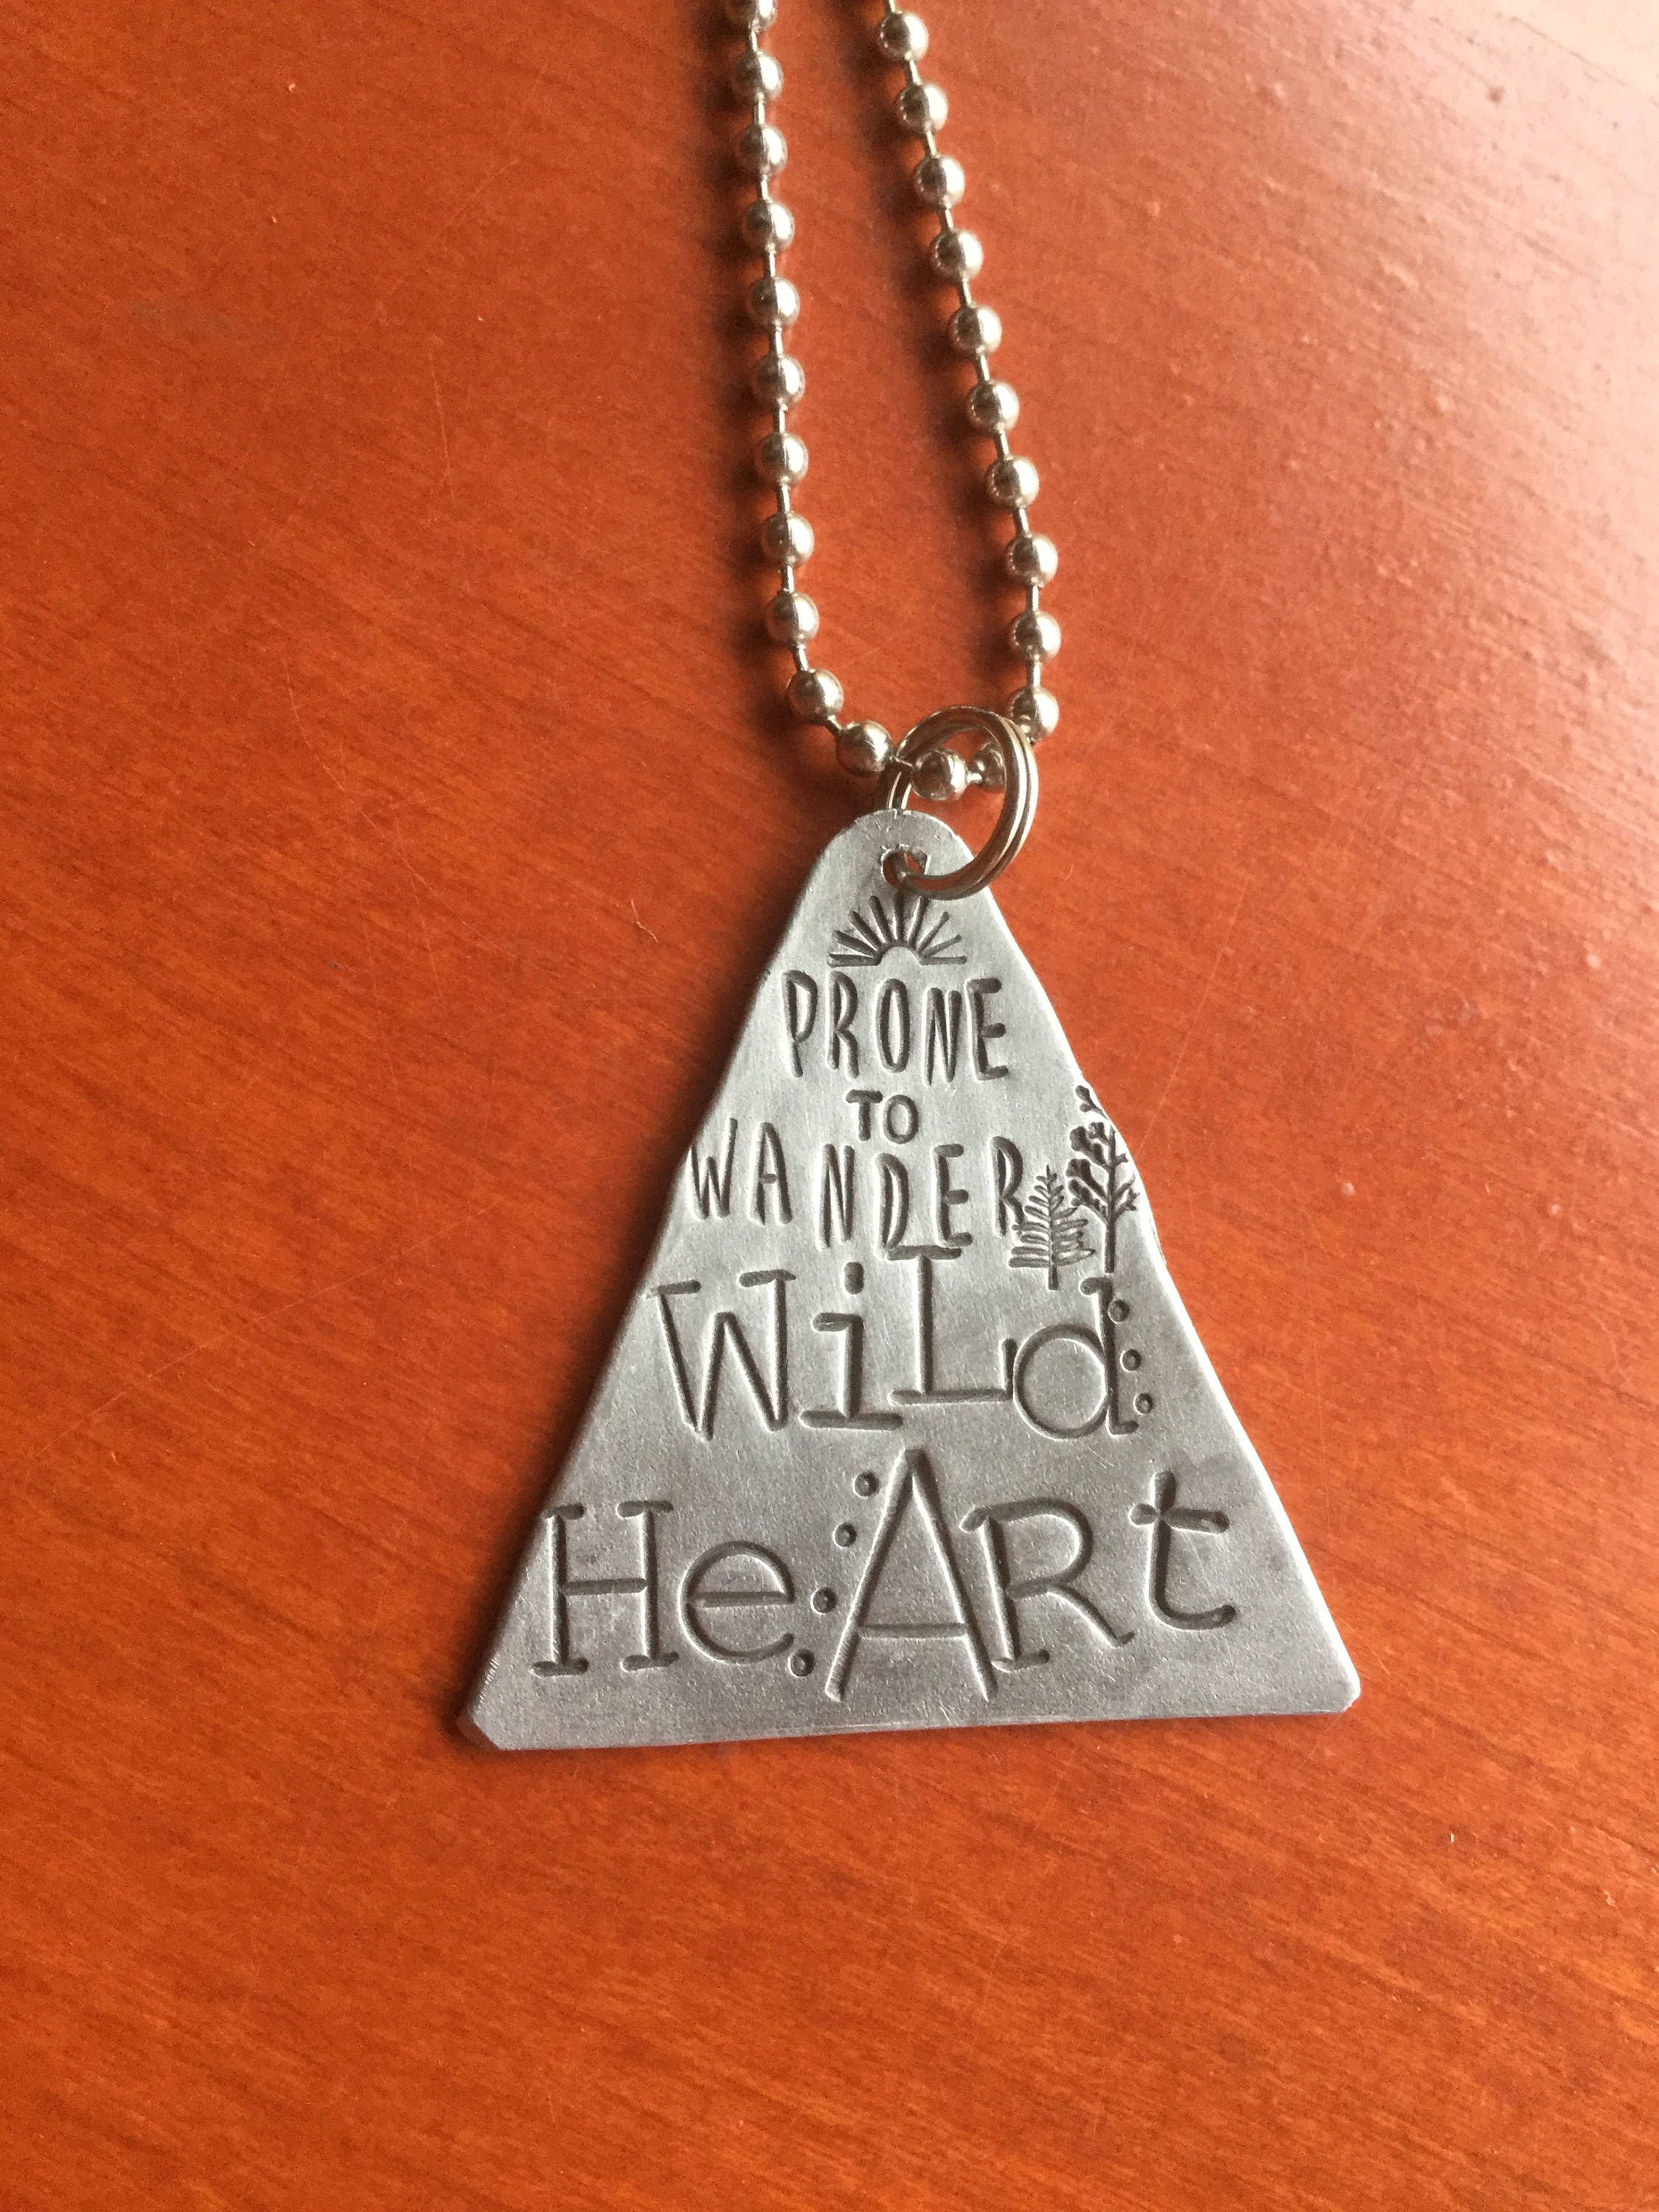 Hand Stamped Metal Prone To Wander Wild Heart Gypsy Soul Hand Made With Regard To Most Current Female Empowerment Motto Pendant Necklaces (View 14 of 25)